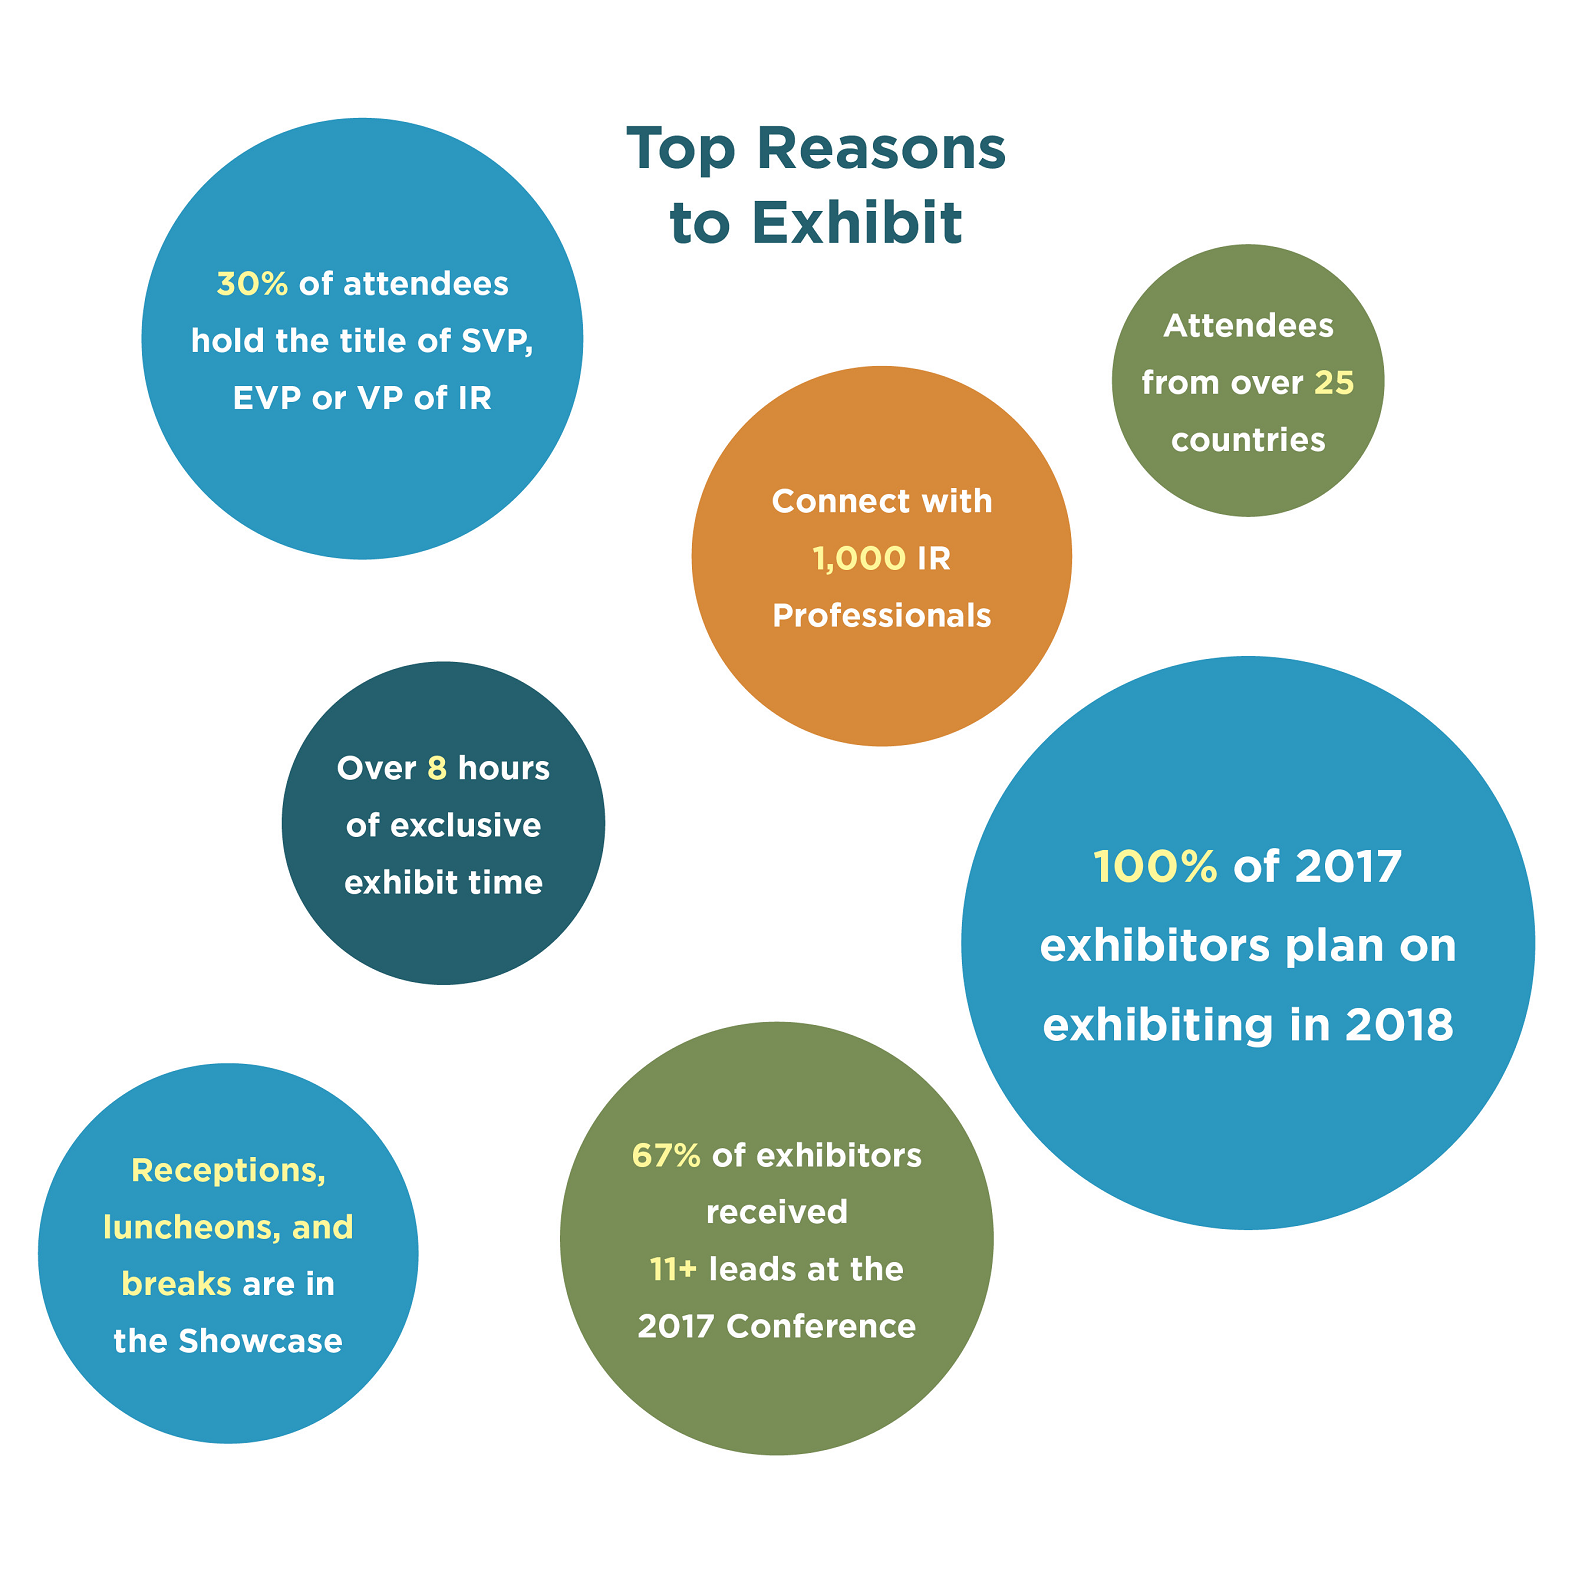 Top Reason to Exhibit